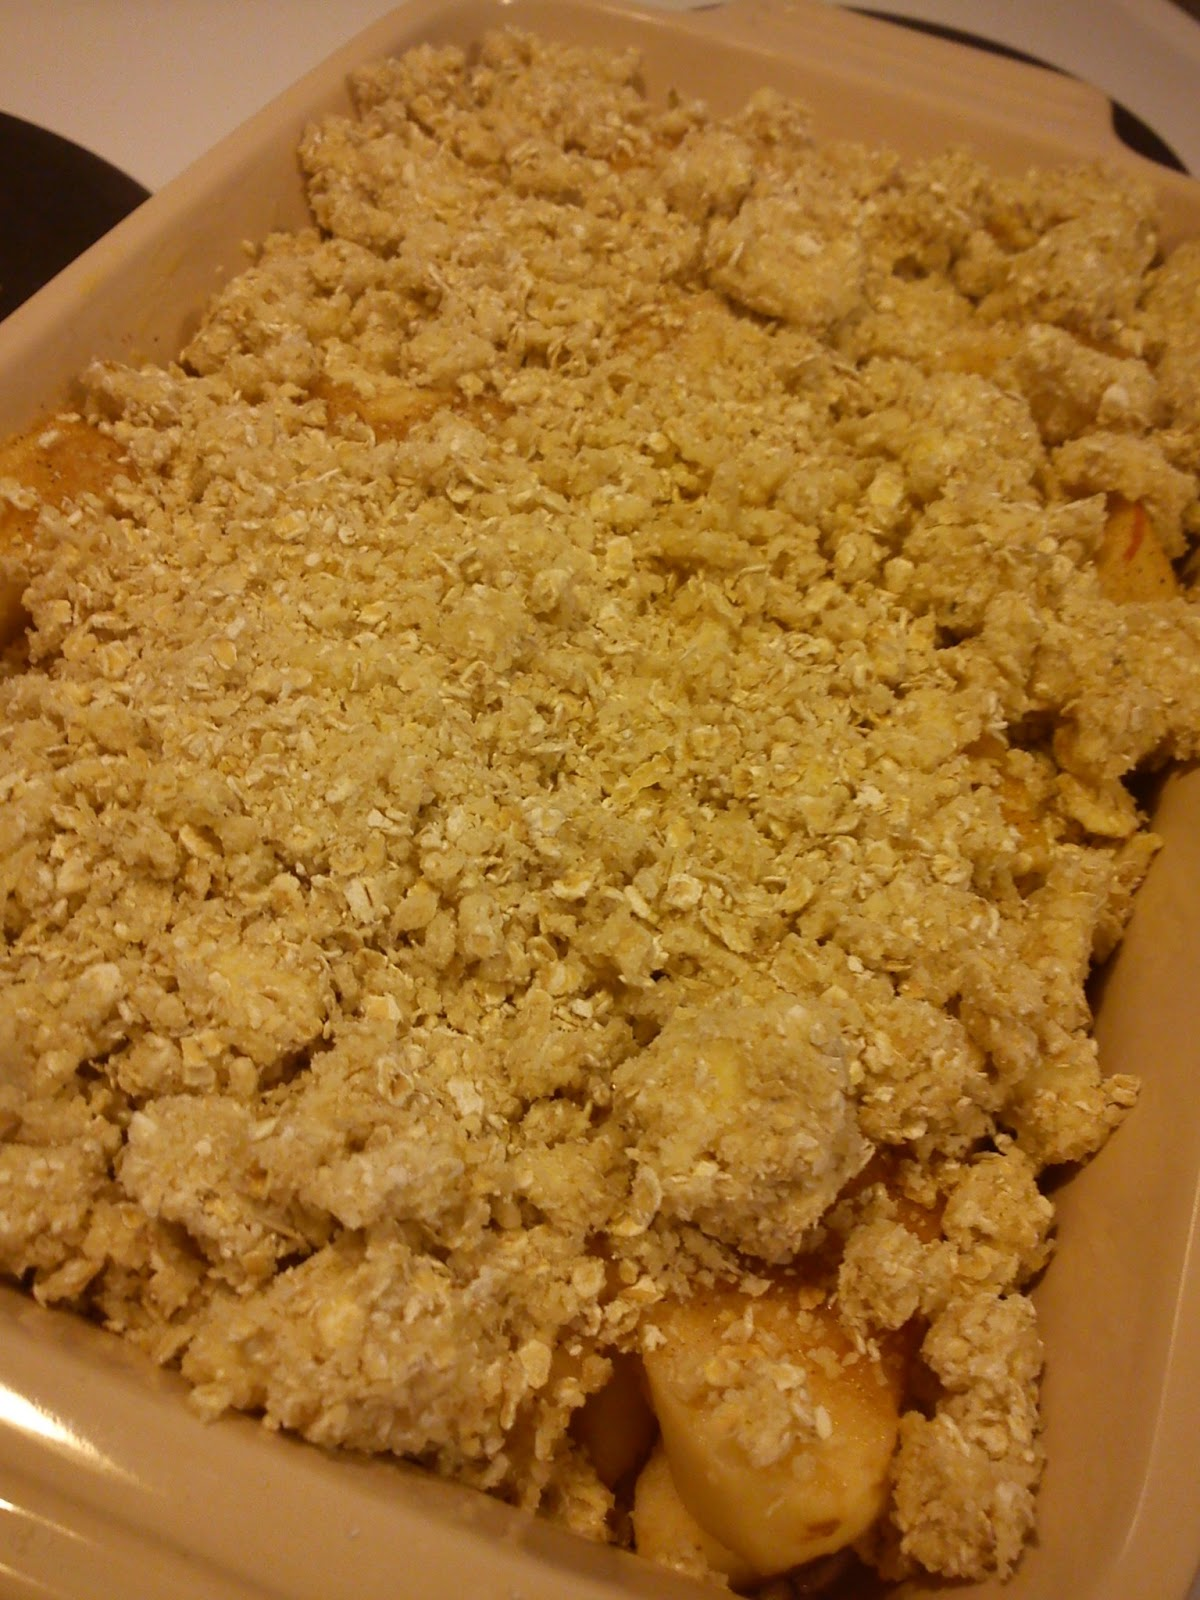 Kitchen of Kiki: Apples with oat flakes crumble